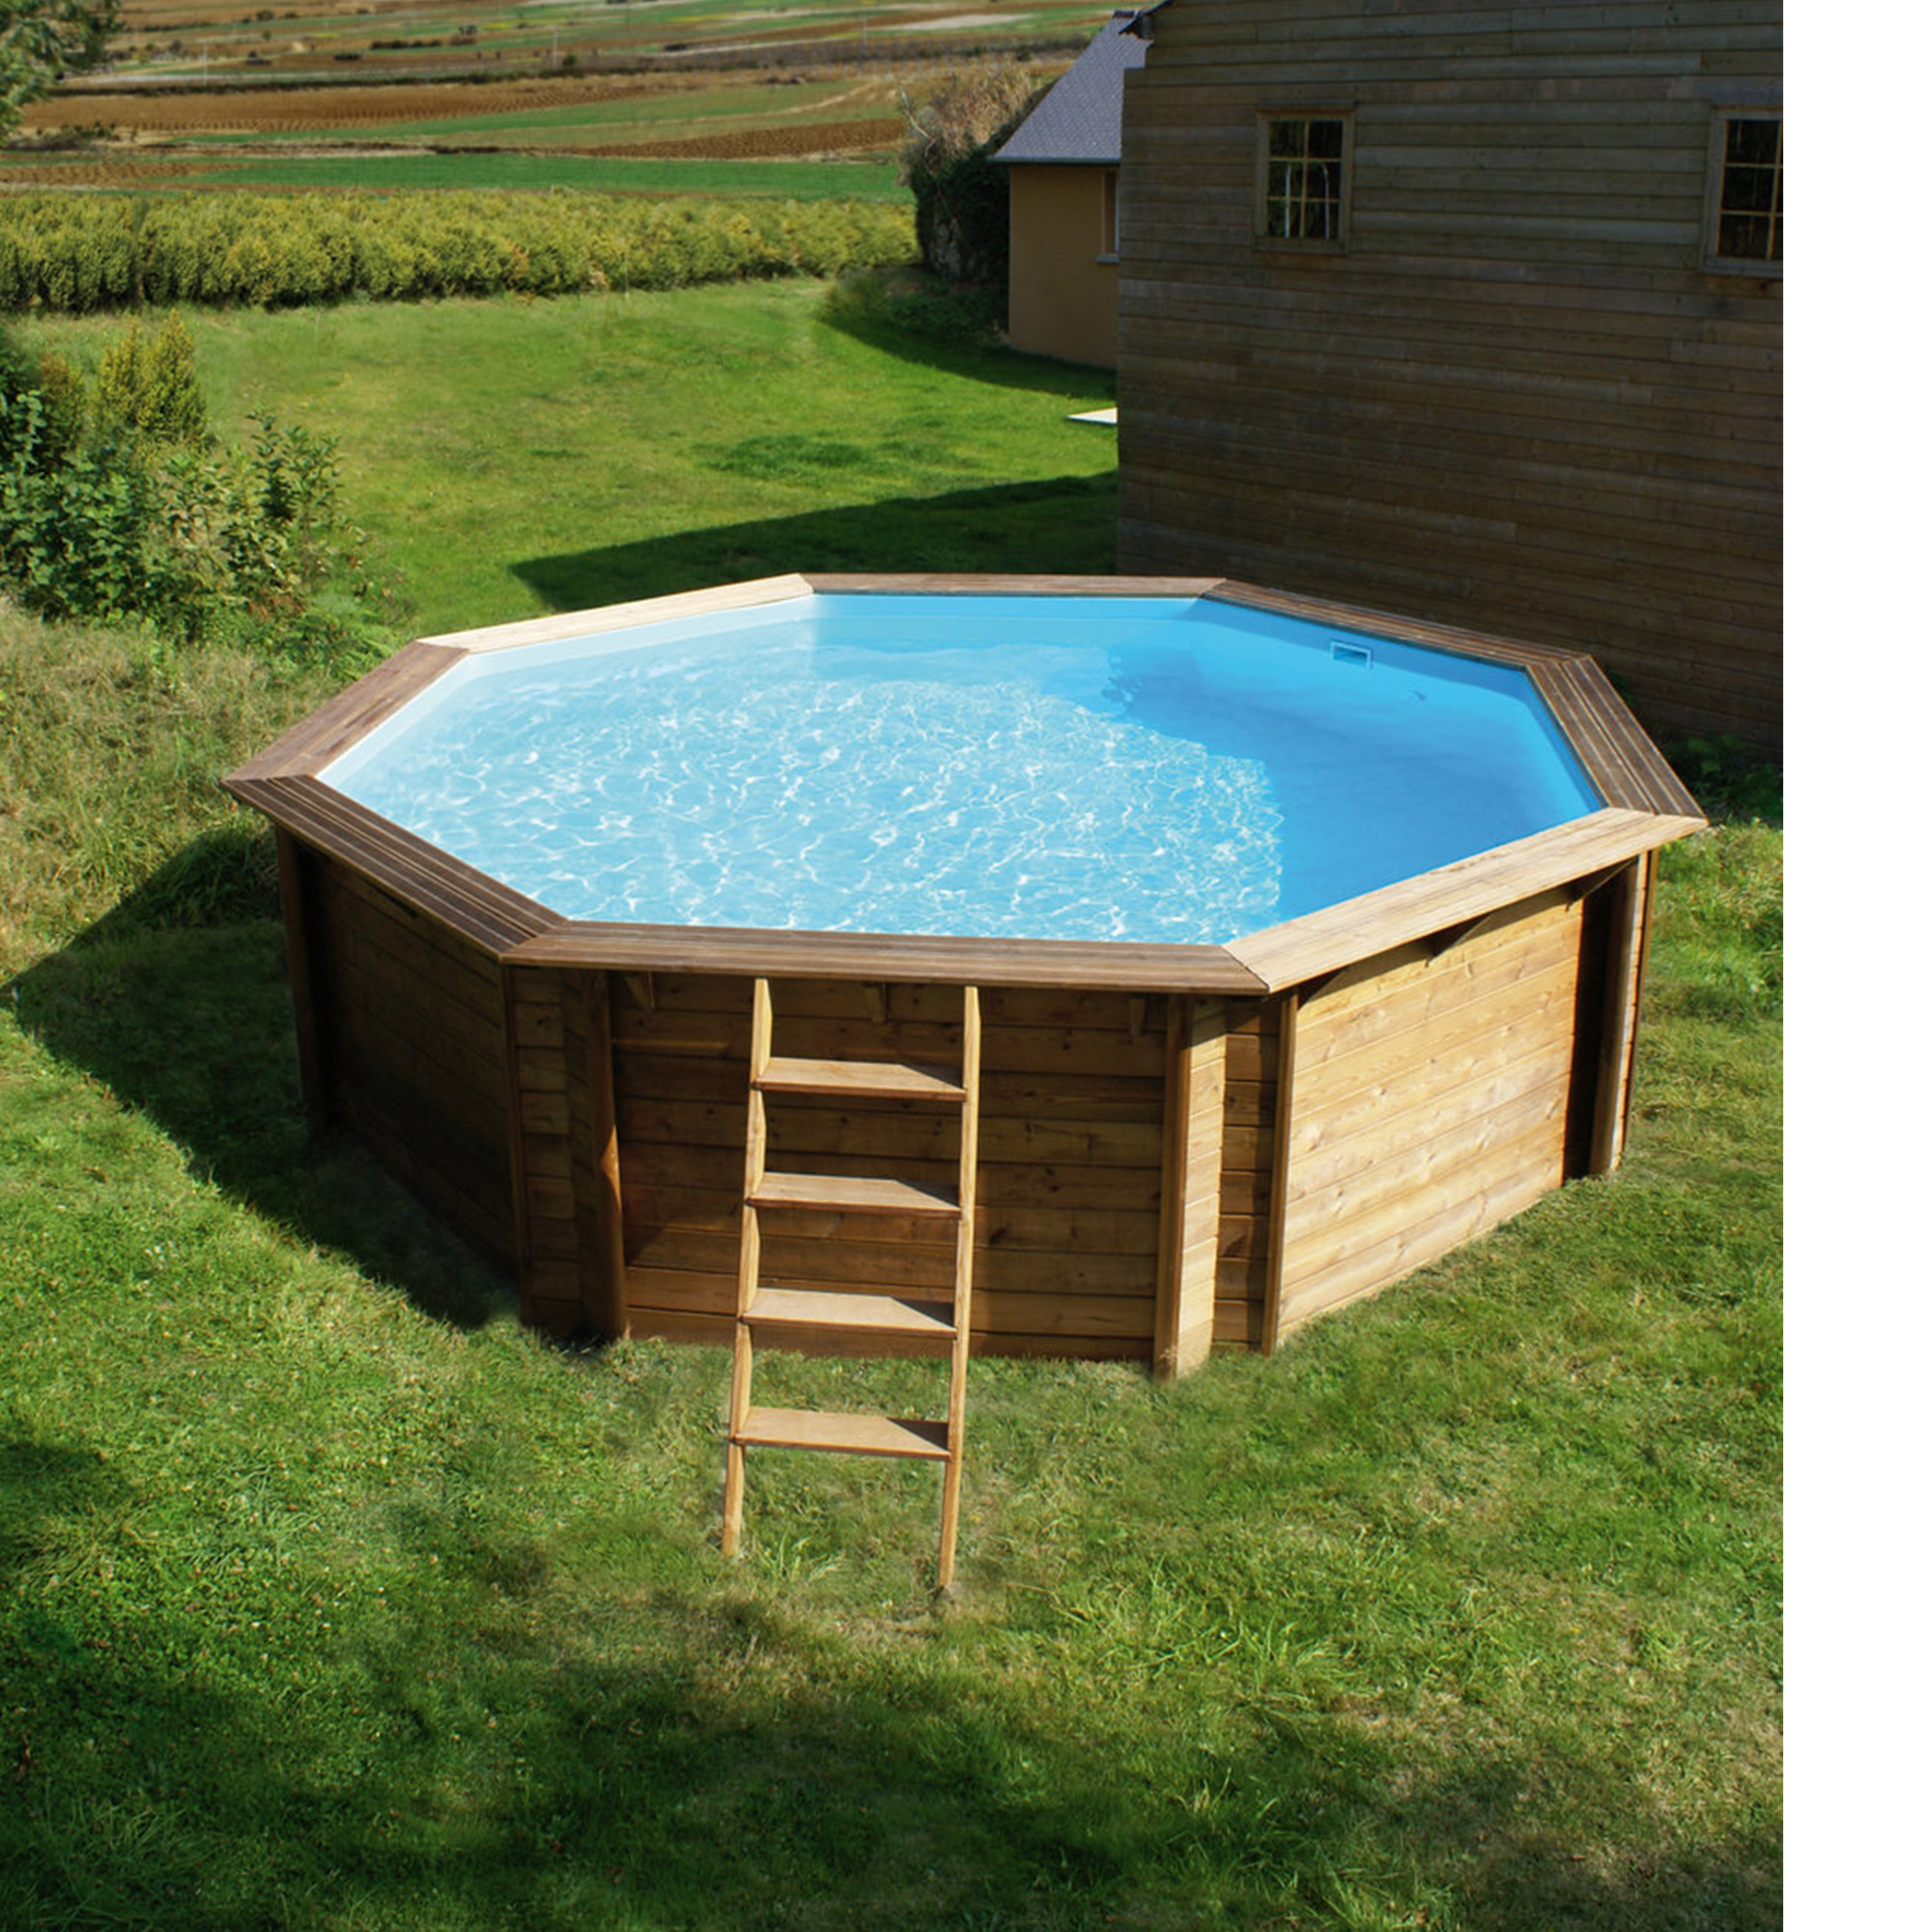 Piscine bois octogonale hors sol semi enterr e for Piscine bois montana